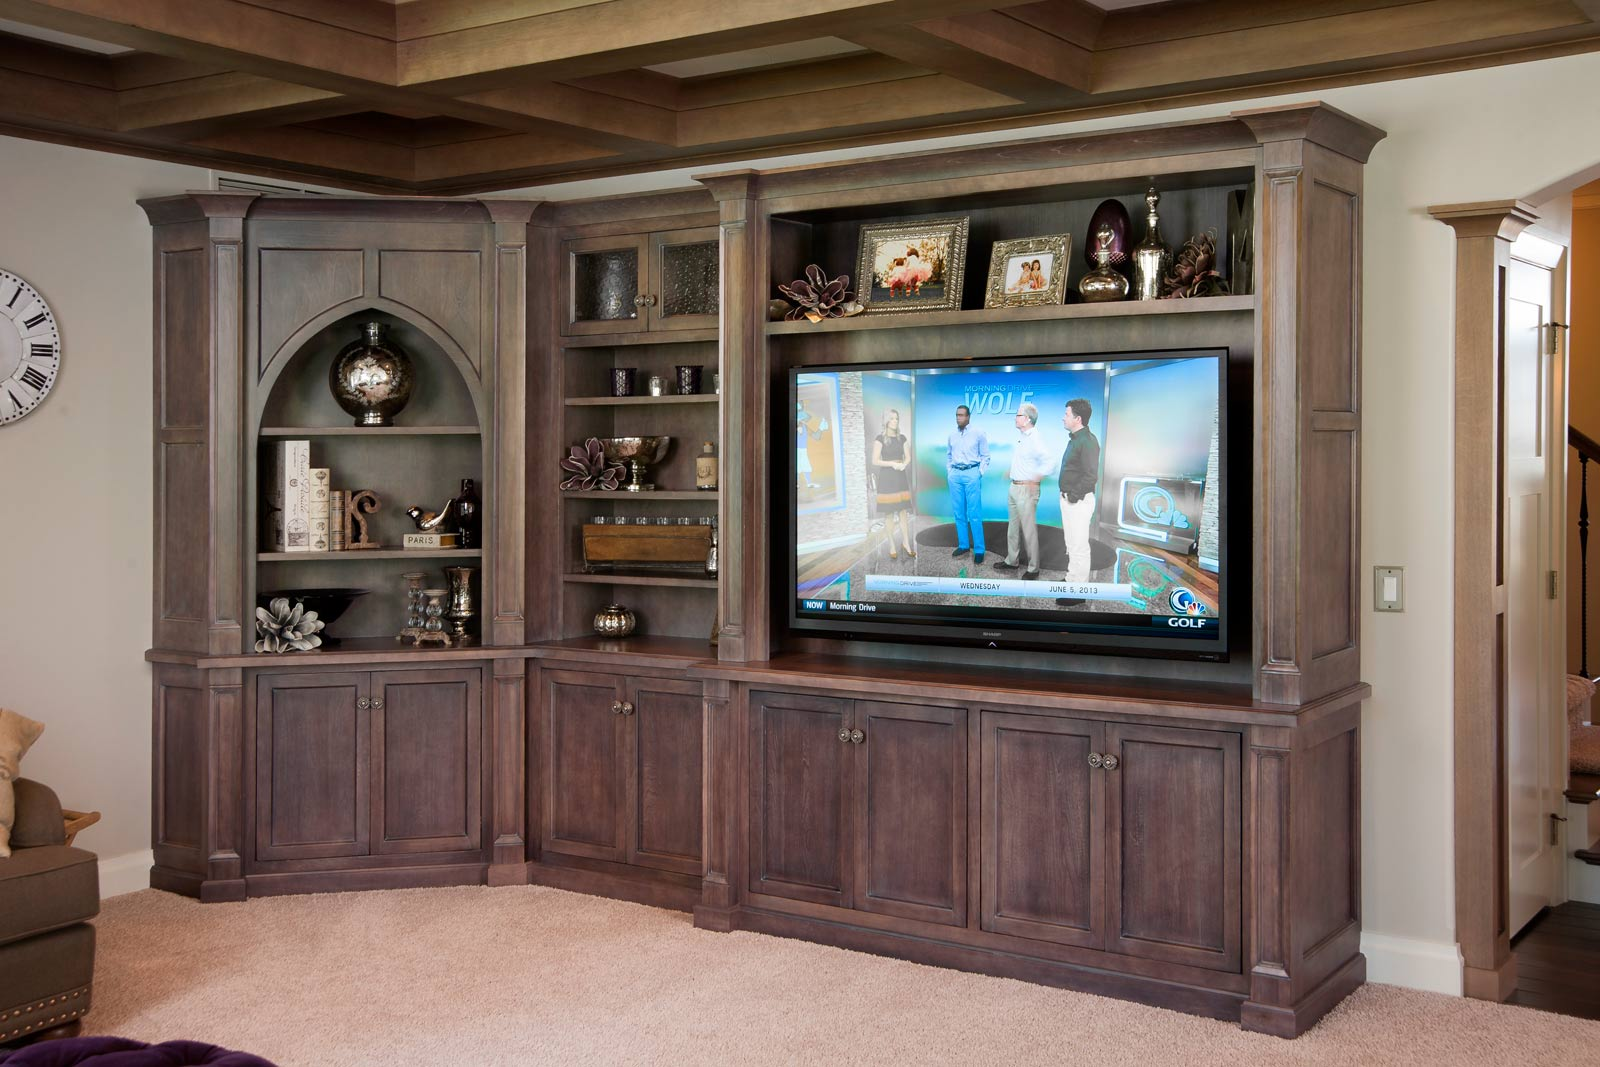 Mullet Cabinet — Living Room Entertainment Area